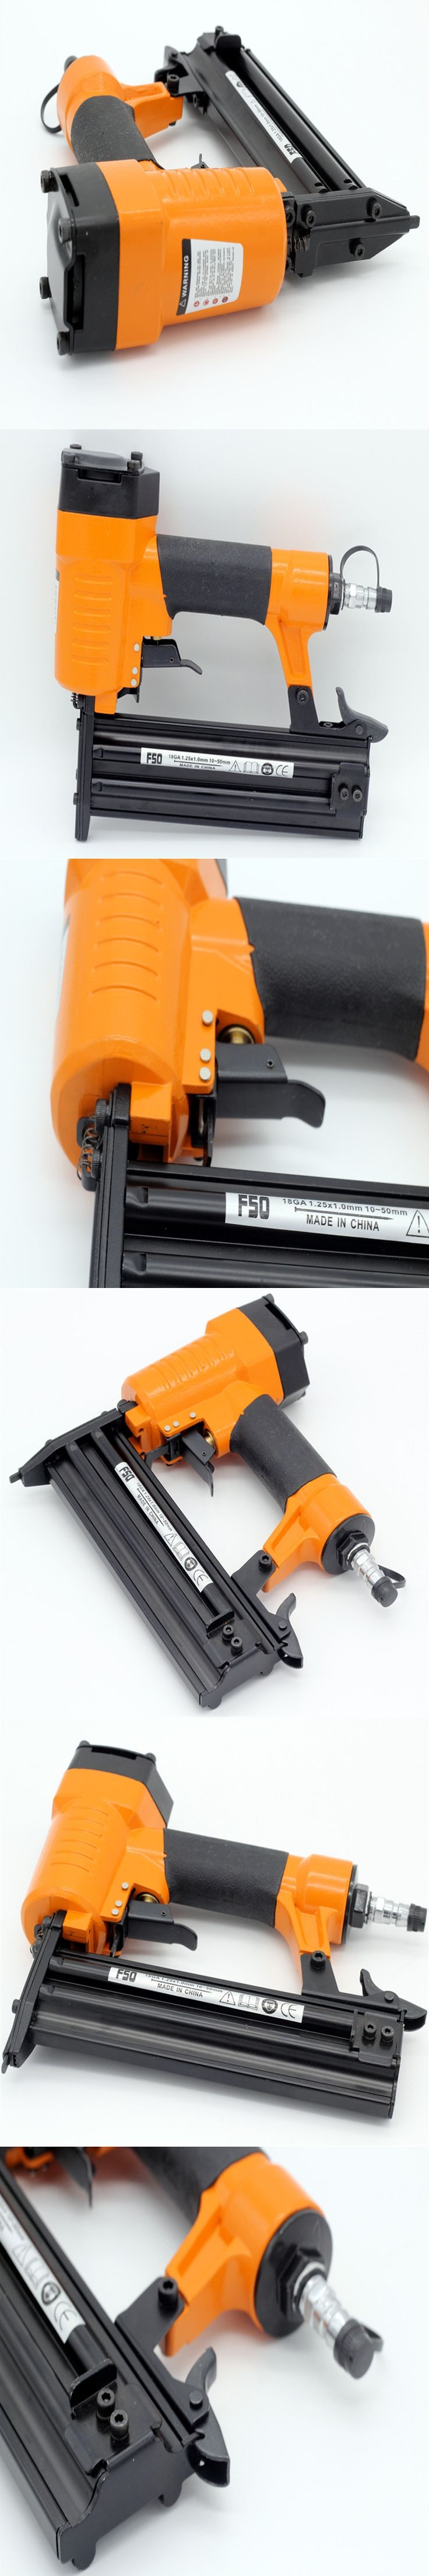 Free Shipping Air Nailer gun pneumatic air stapler power tools pneumatic tools air tools F50 straight nail gun